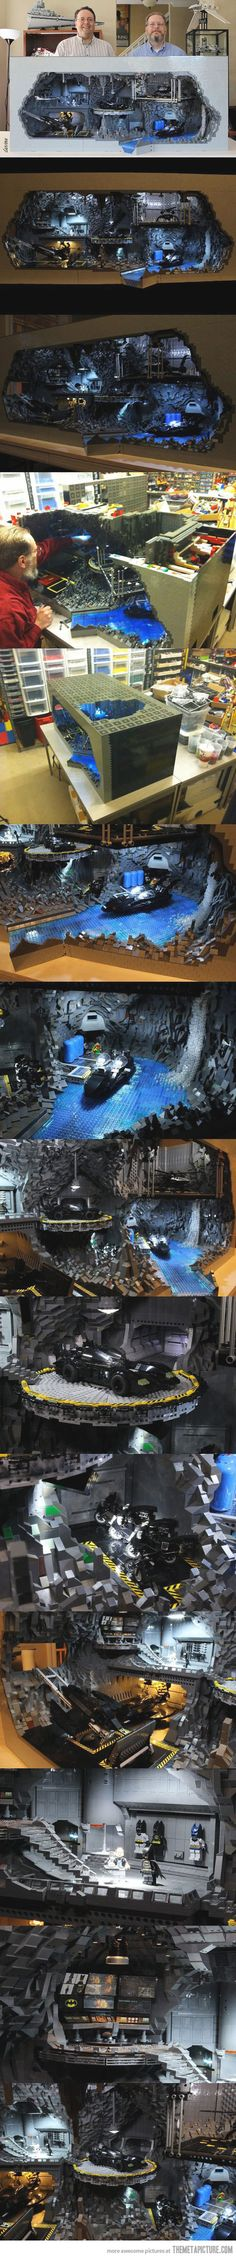 Batcave made out of 20,000 LEGO pieces…